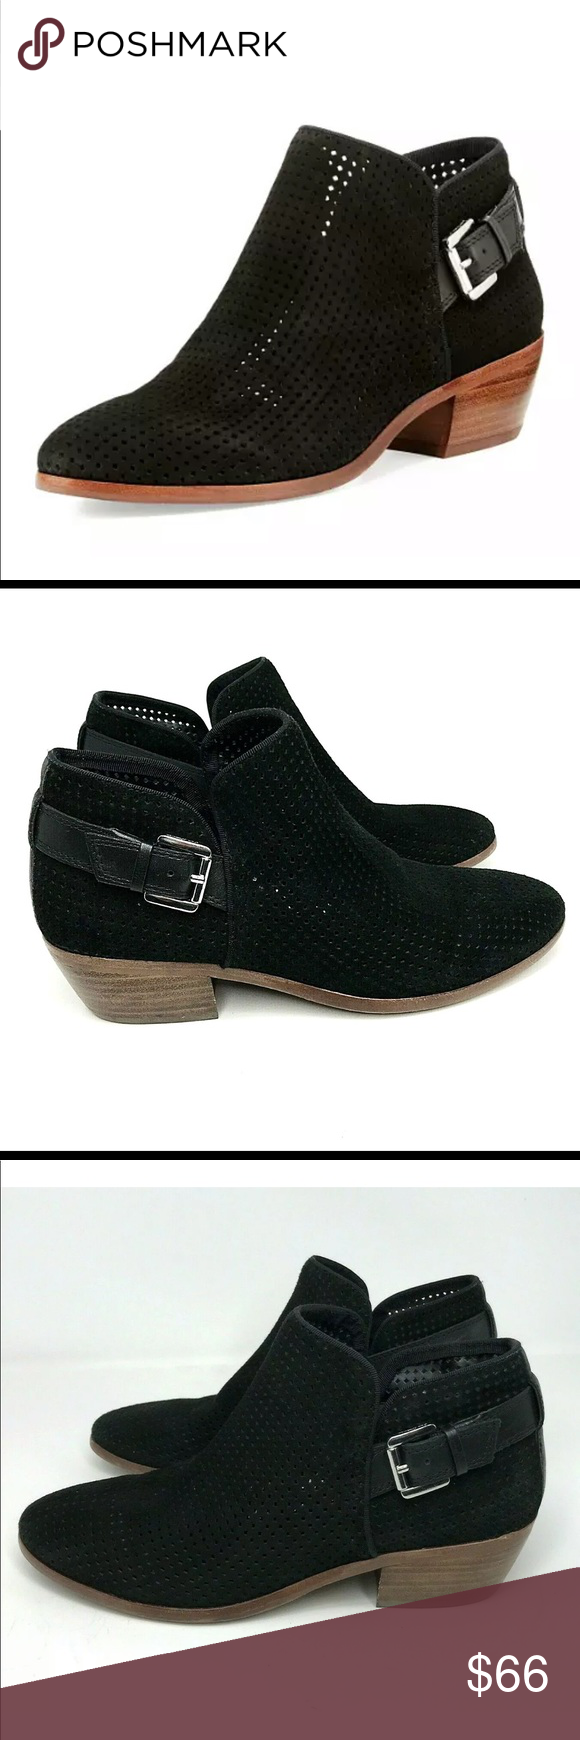 Sam Edelman BlackSuede Booties SZ 7 Cute Sam Edelman Black Suede Booties in Size 7  •Style: Paula Chelsea  •1 3/4 inch stacked heel | 3 1/2 inch shaft • Slip On •Adjustable Strap With Buckle Closure •Perforated Leather Leather Upper, Synthetic Lining & Sole  kcc0423-03102019 Sam Edelman Shoes Ankle Boots & Booties